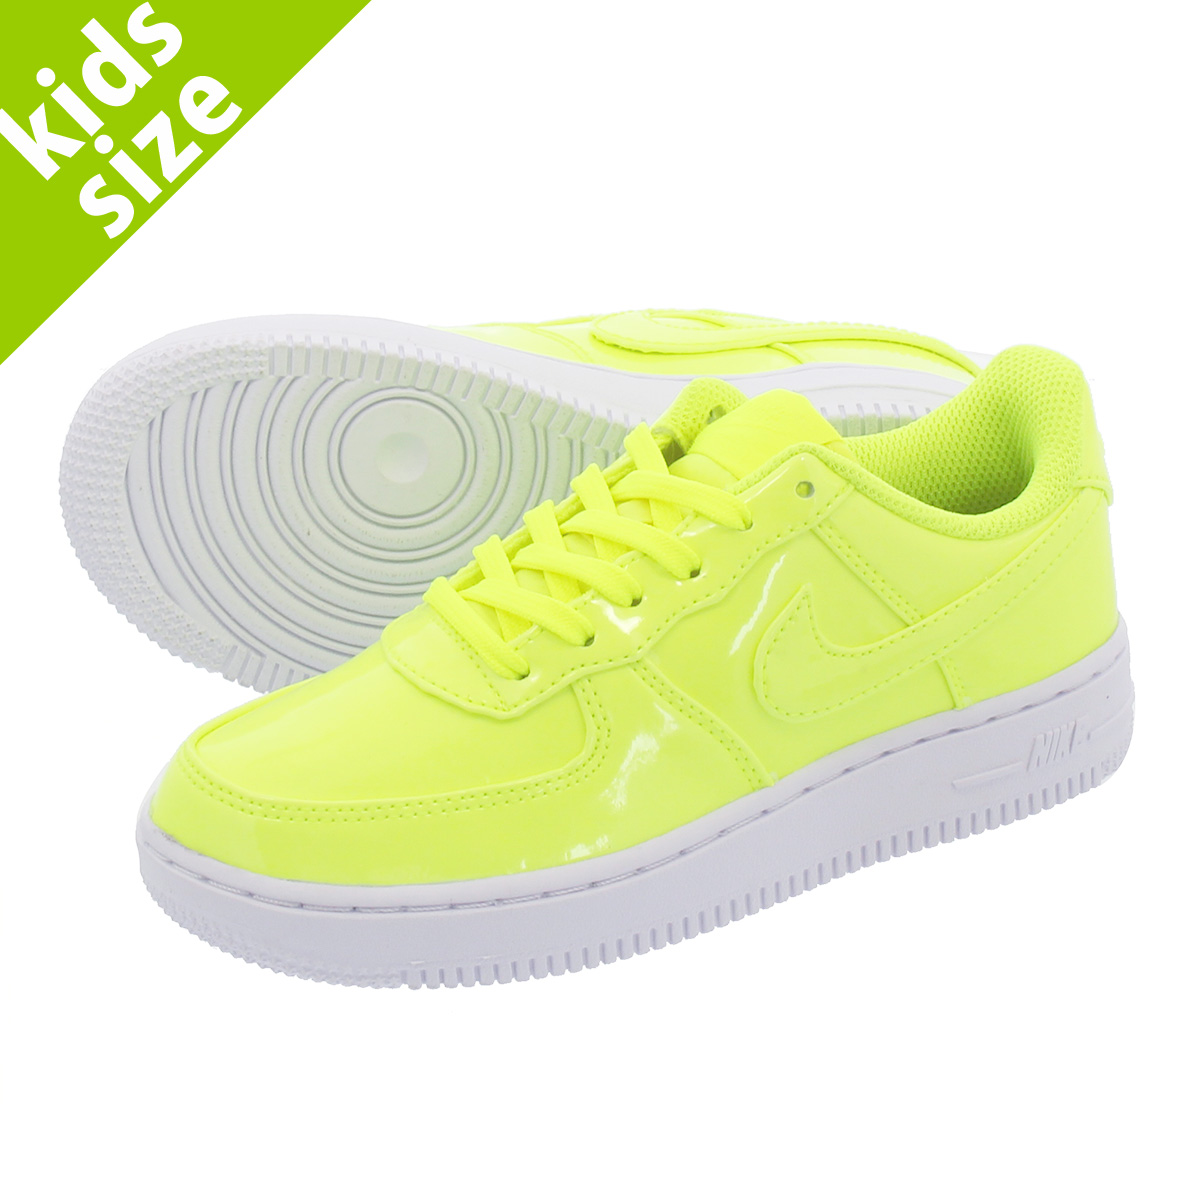 【キッズ サイズ】【16cm-22cm】 NIKE AIR FORCE 1 LOW UV PS ナイキ エアフォース 1 ロー UV PS VOLT/WHITE ao2287-700